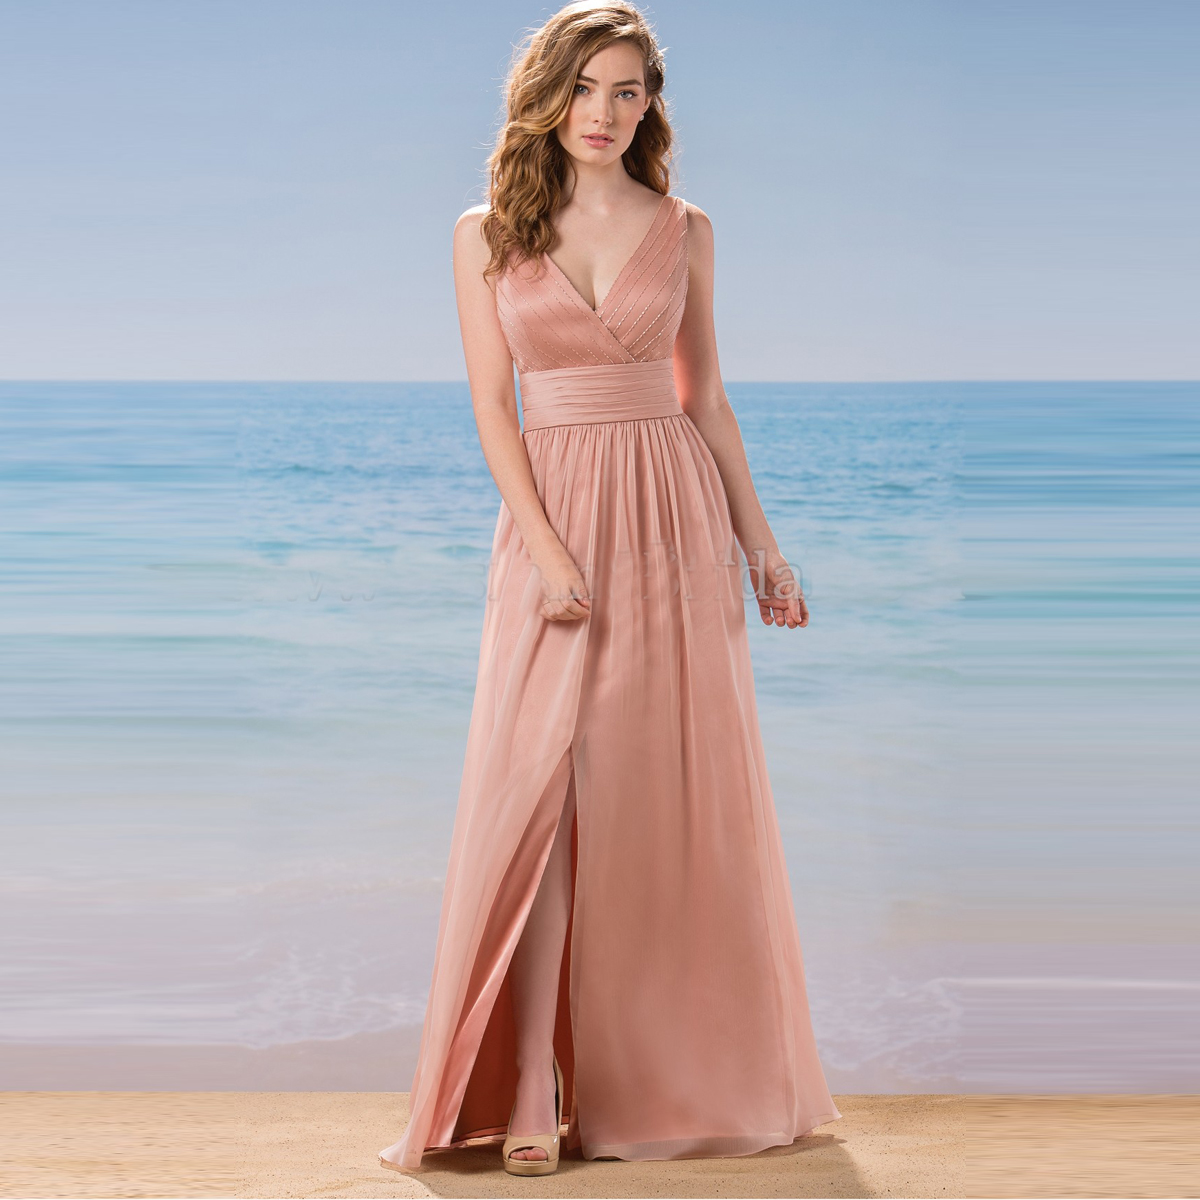 c3a5d215ed V-neck Long Chiffon Prom dress beaded Evening Gowns women Dress 2016 Sexy  Prom Gowns